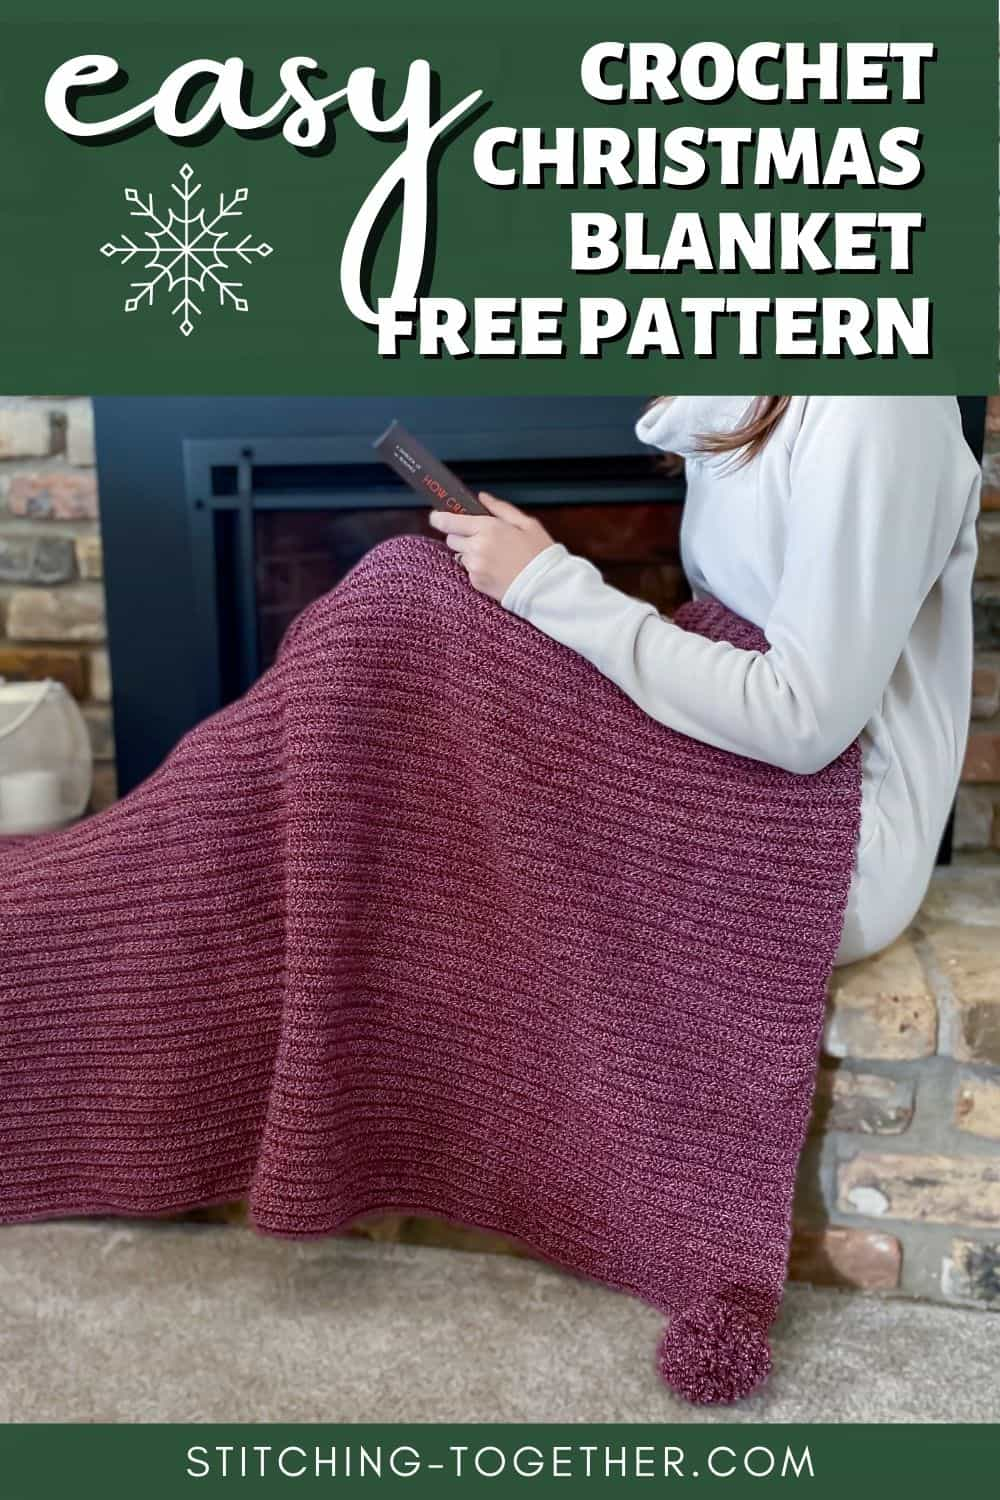 pin image of a christmas crochet throw on a lady